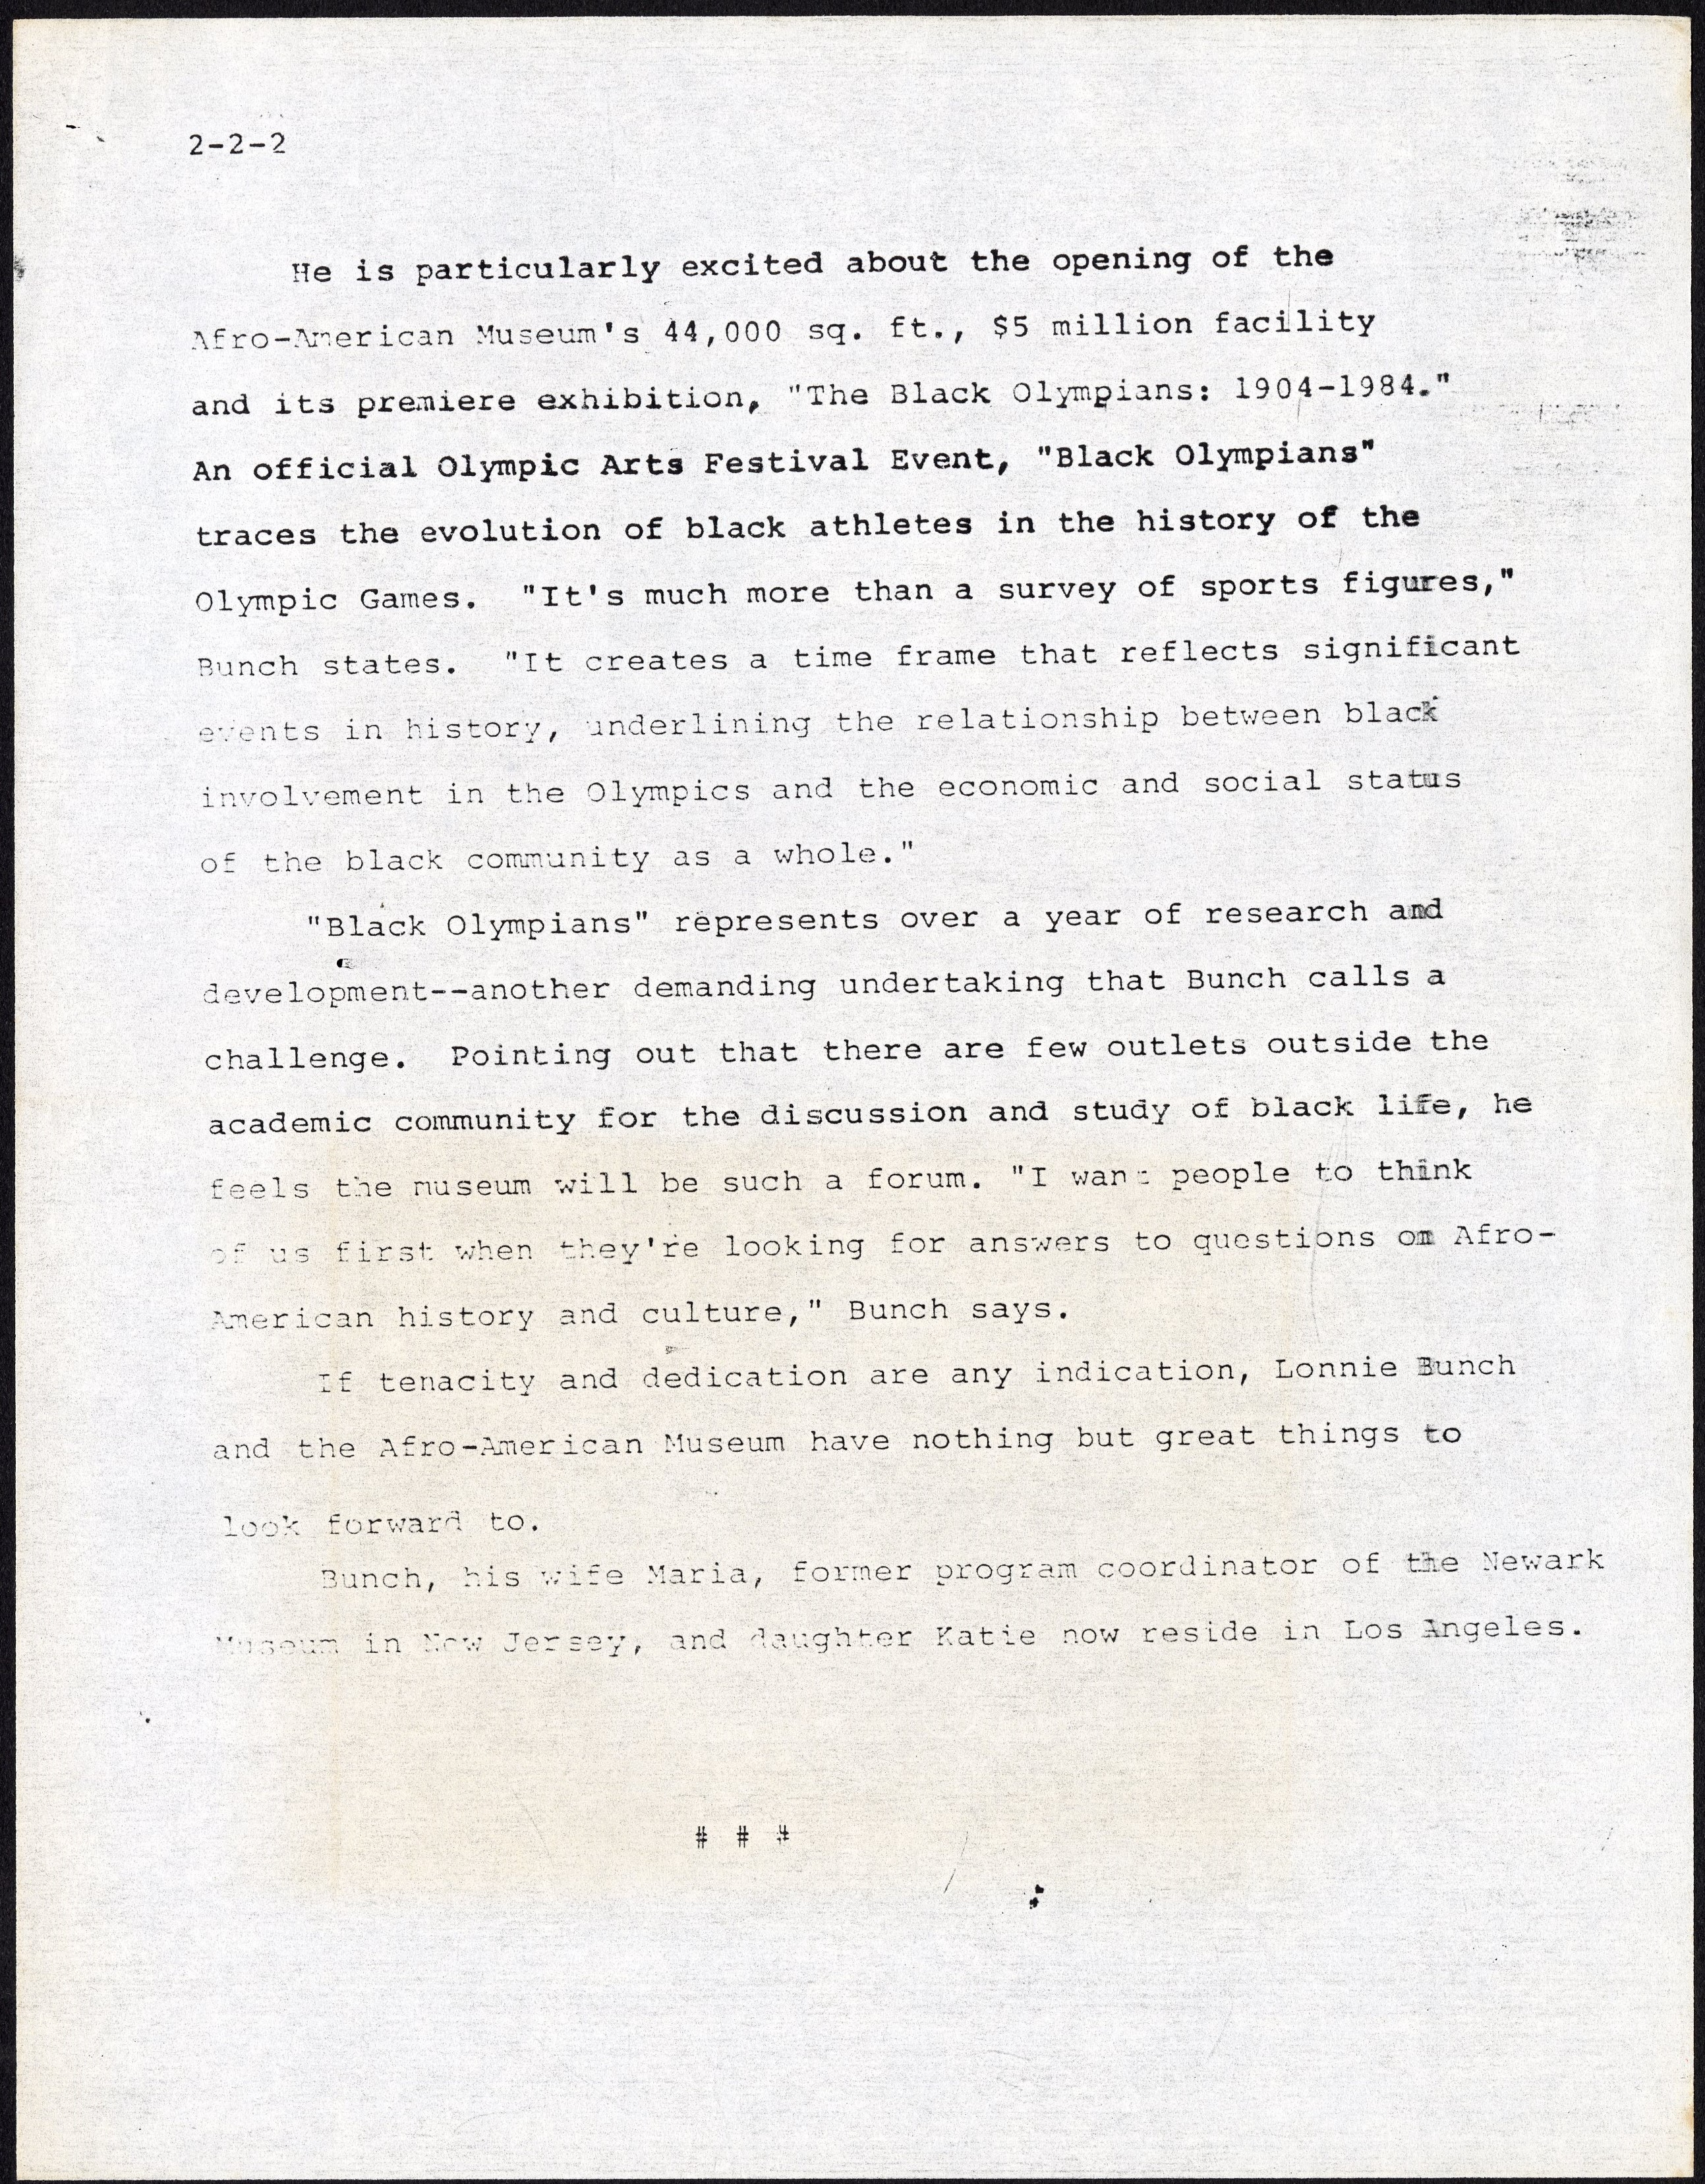 Press Release - Lonnie G. Bunch - California Afro-American Museum, 1983, page 2. Accession 19-200: L